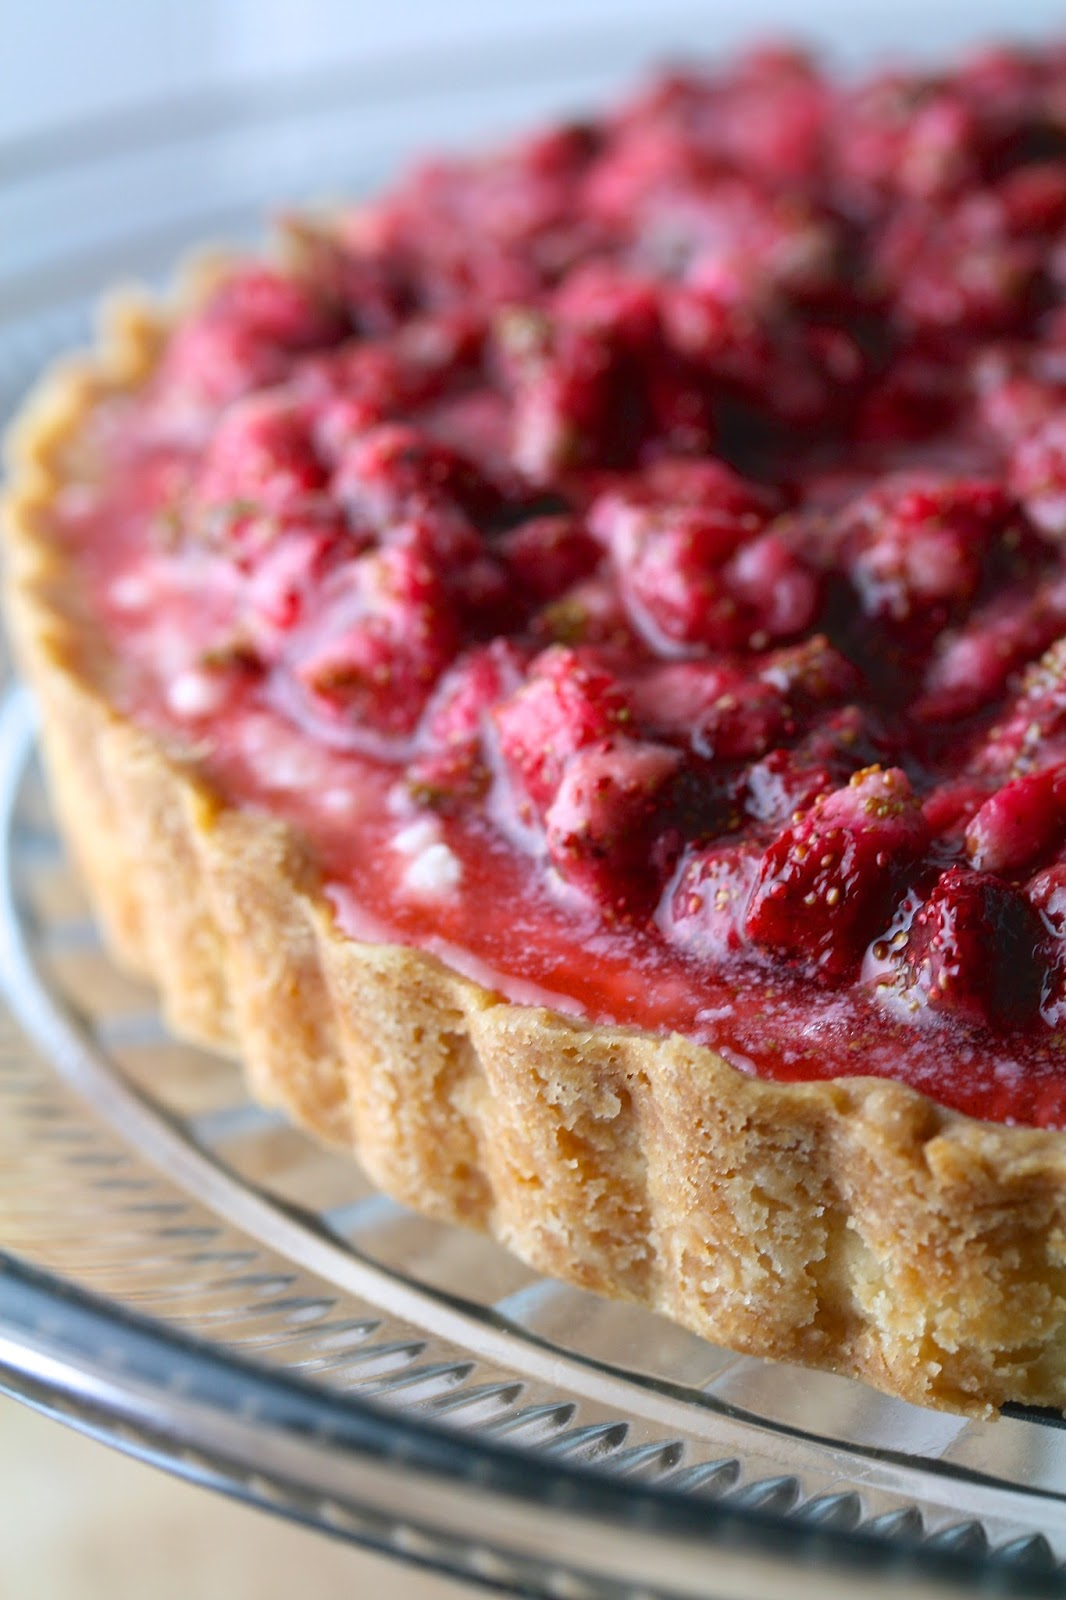 Oregon Transplant: Alpine Strawberry Mascarpone Tart